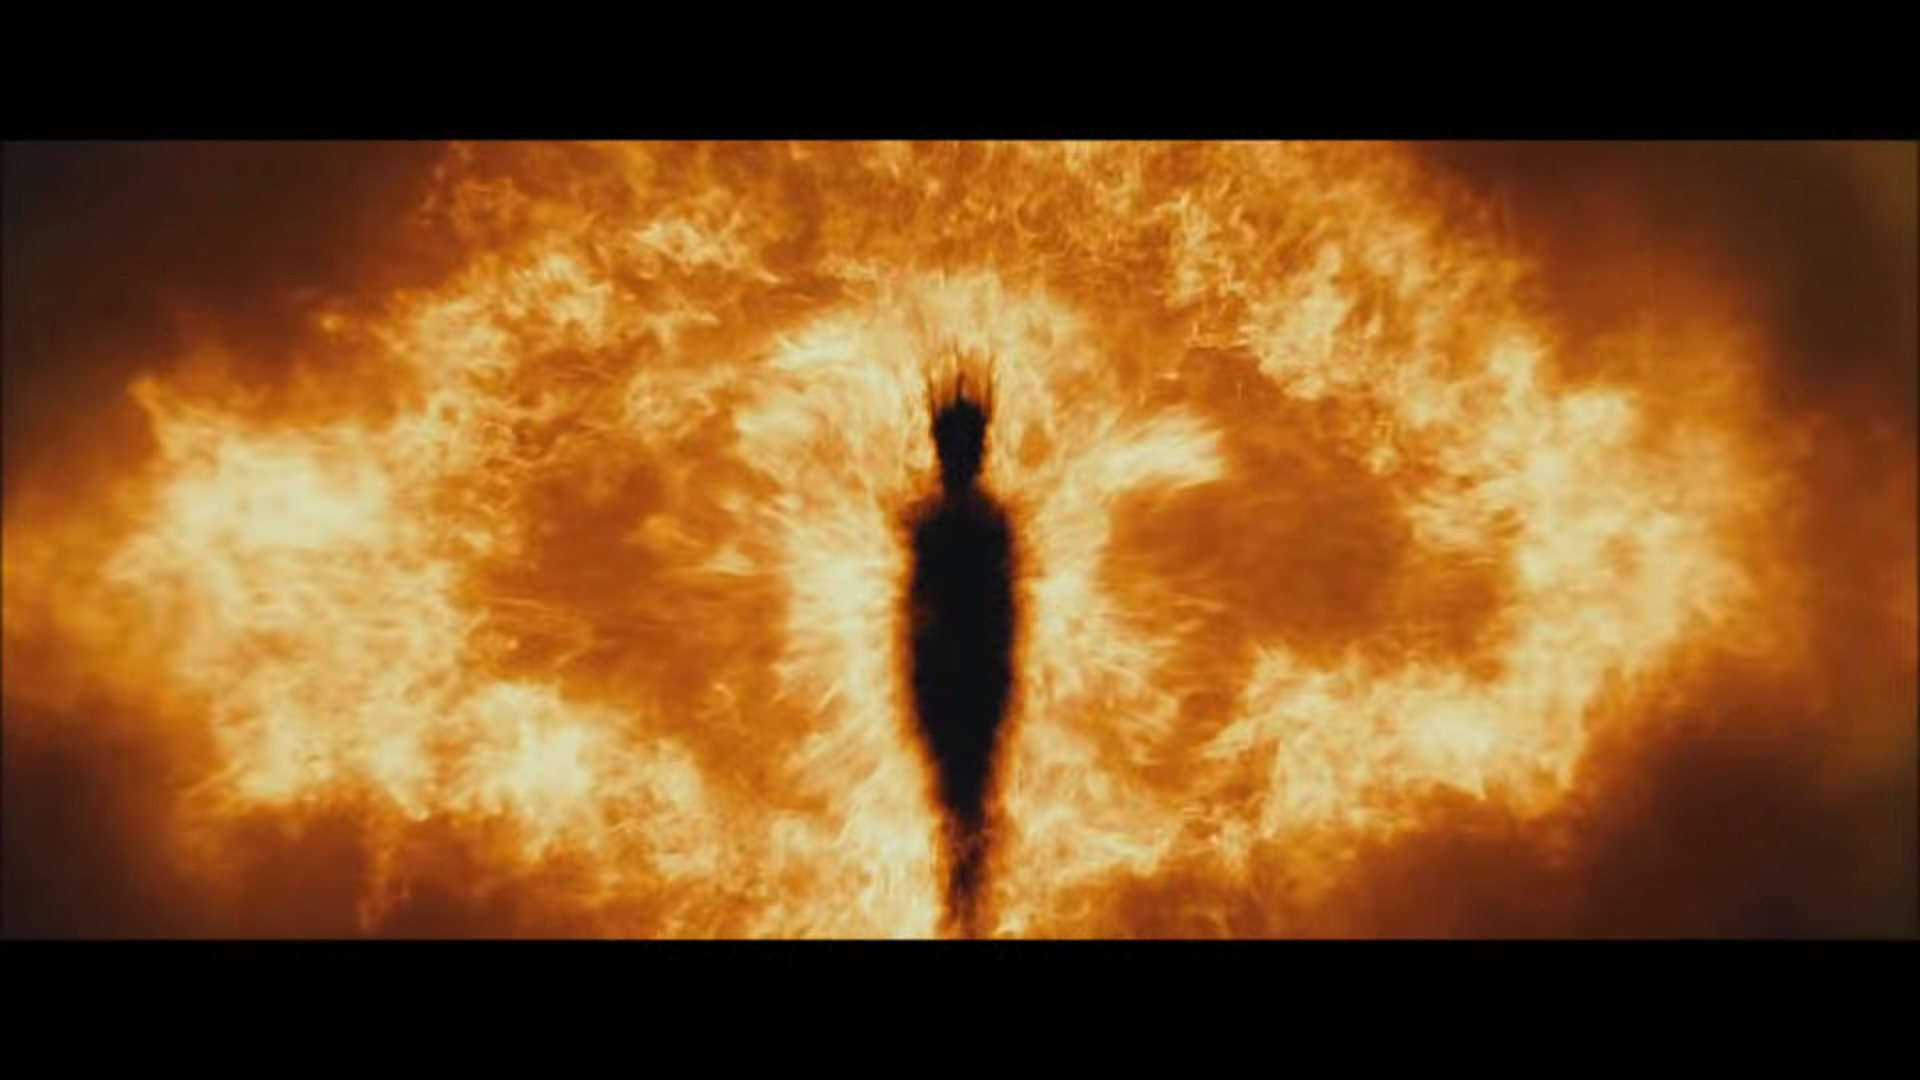 The Eye Of Sauron Seen On The Hobbit Dos Lord Of The Rings The Hobbit Chronicles Of Narnia